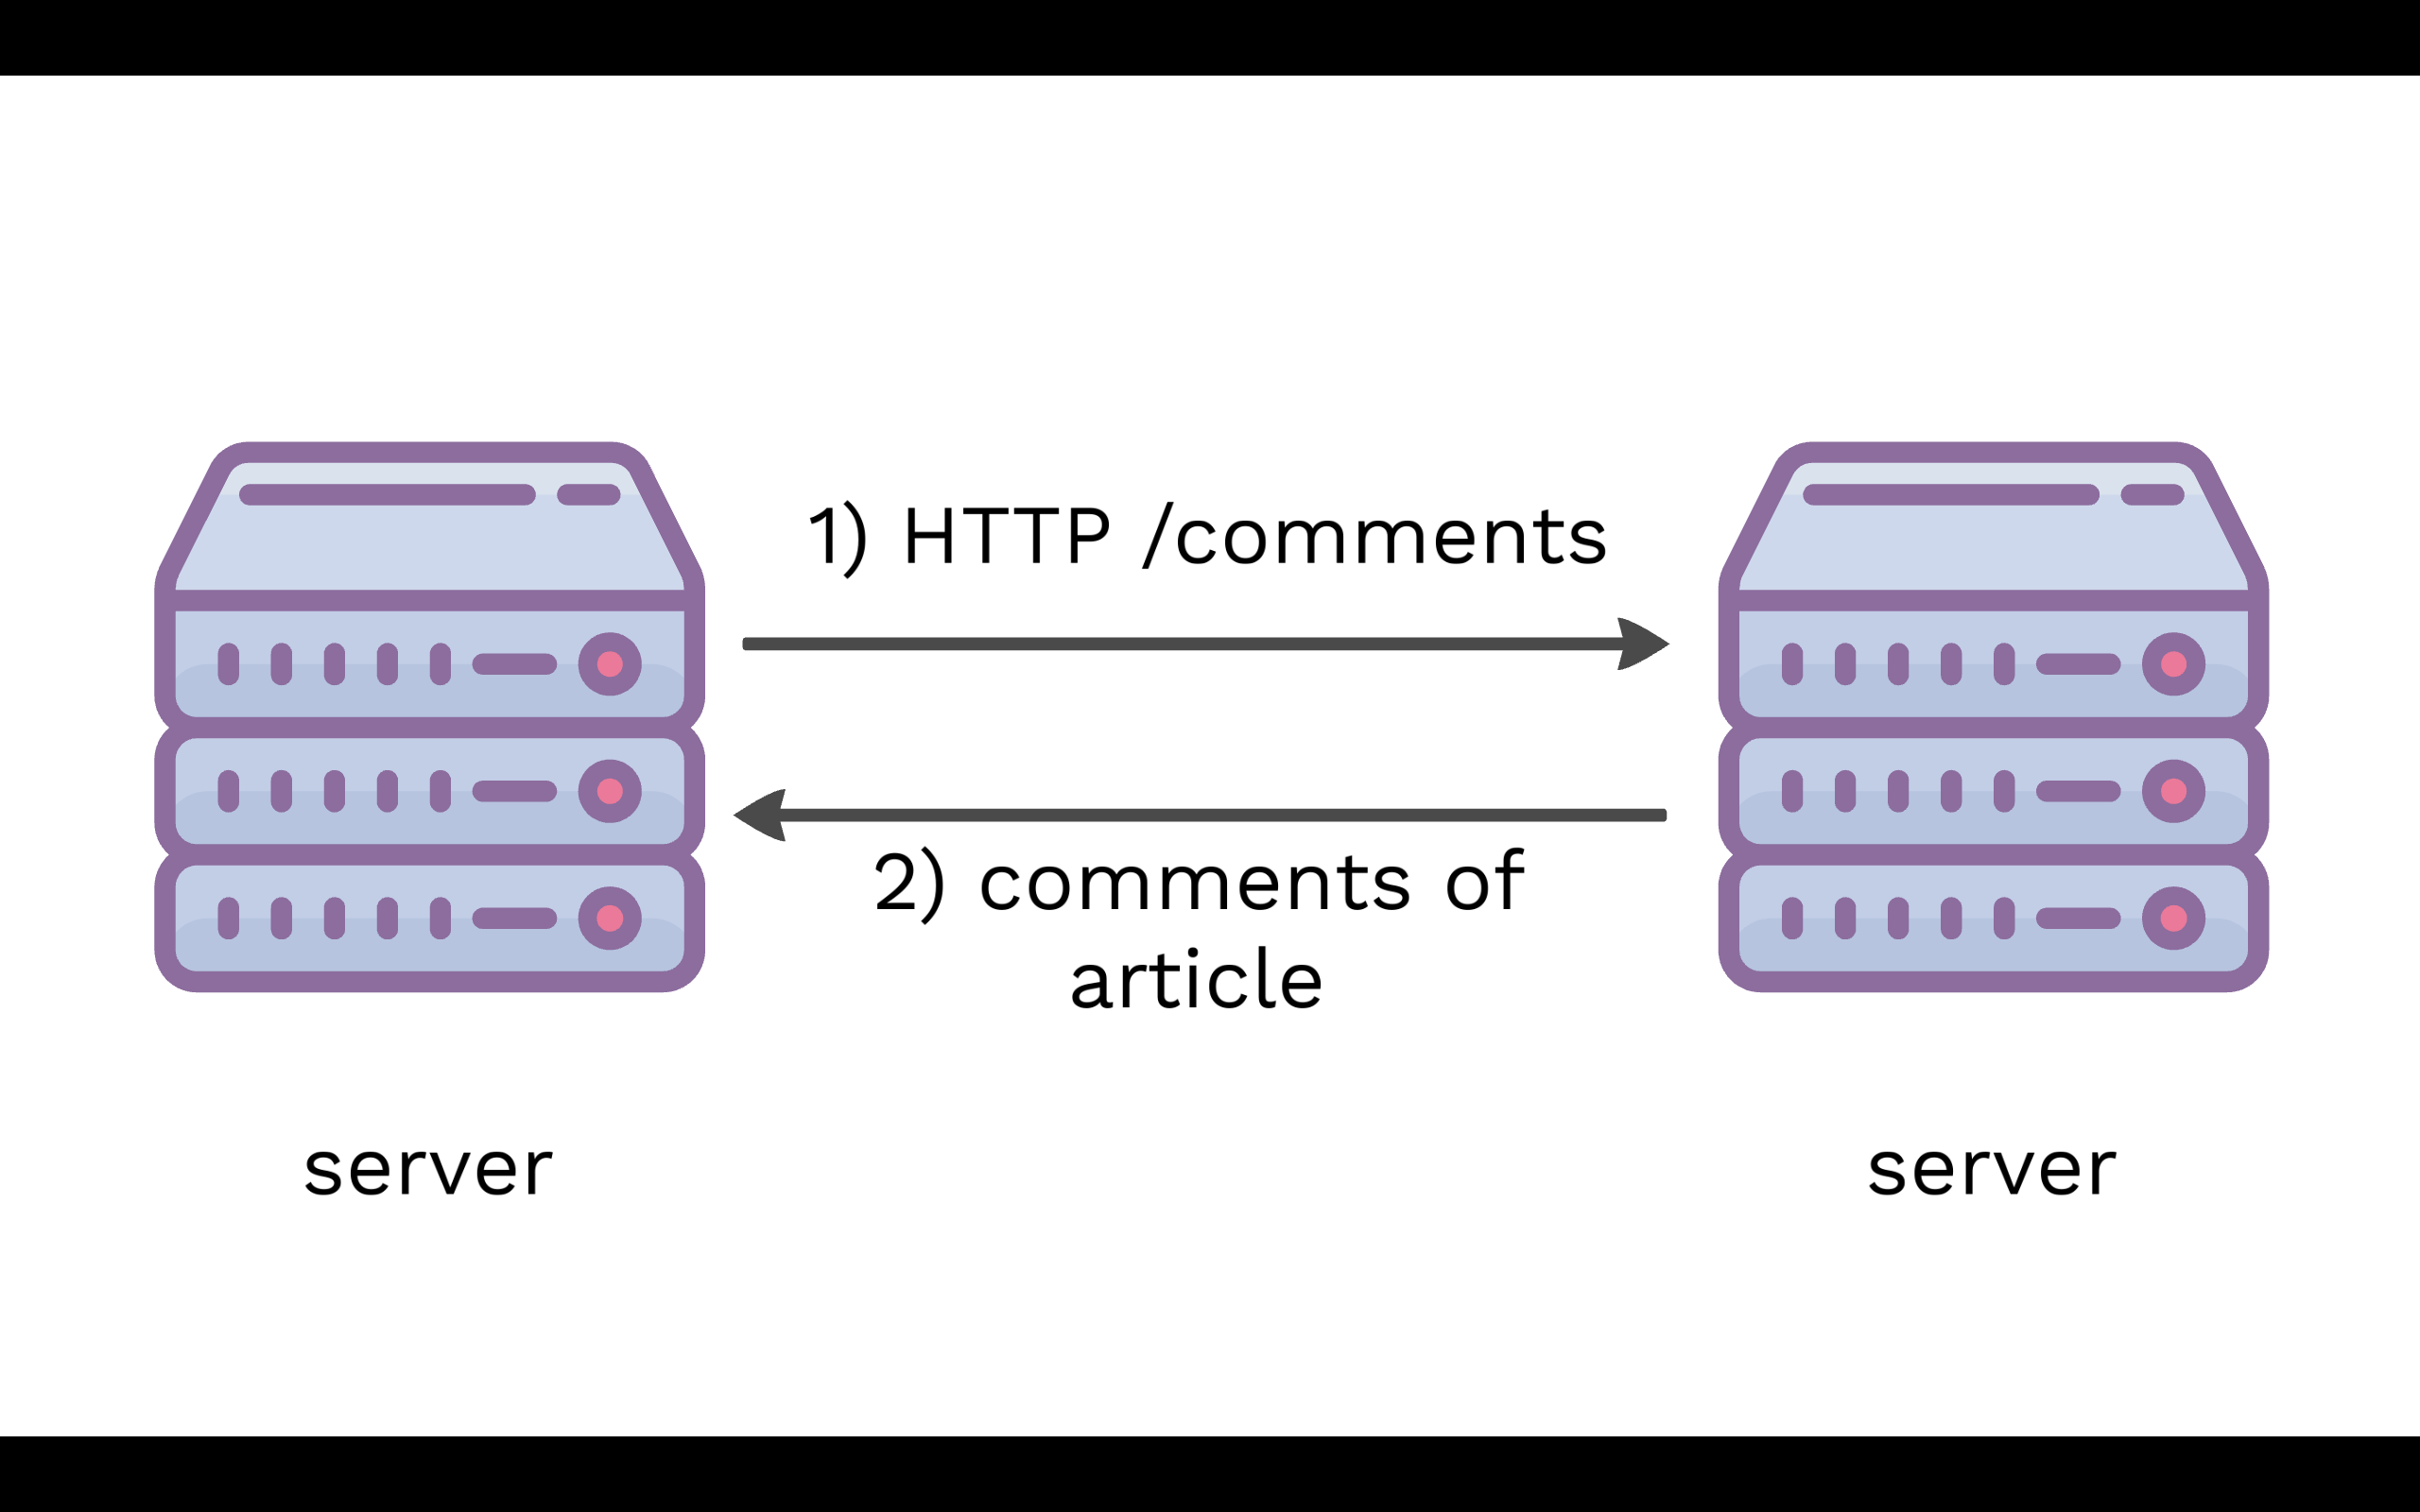 server-server communication